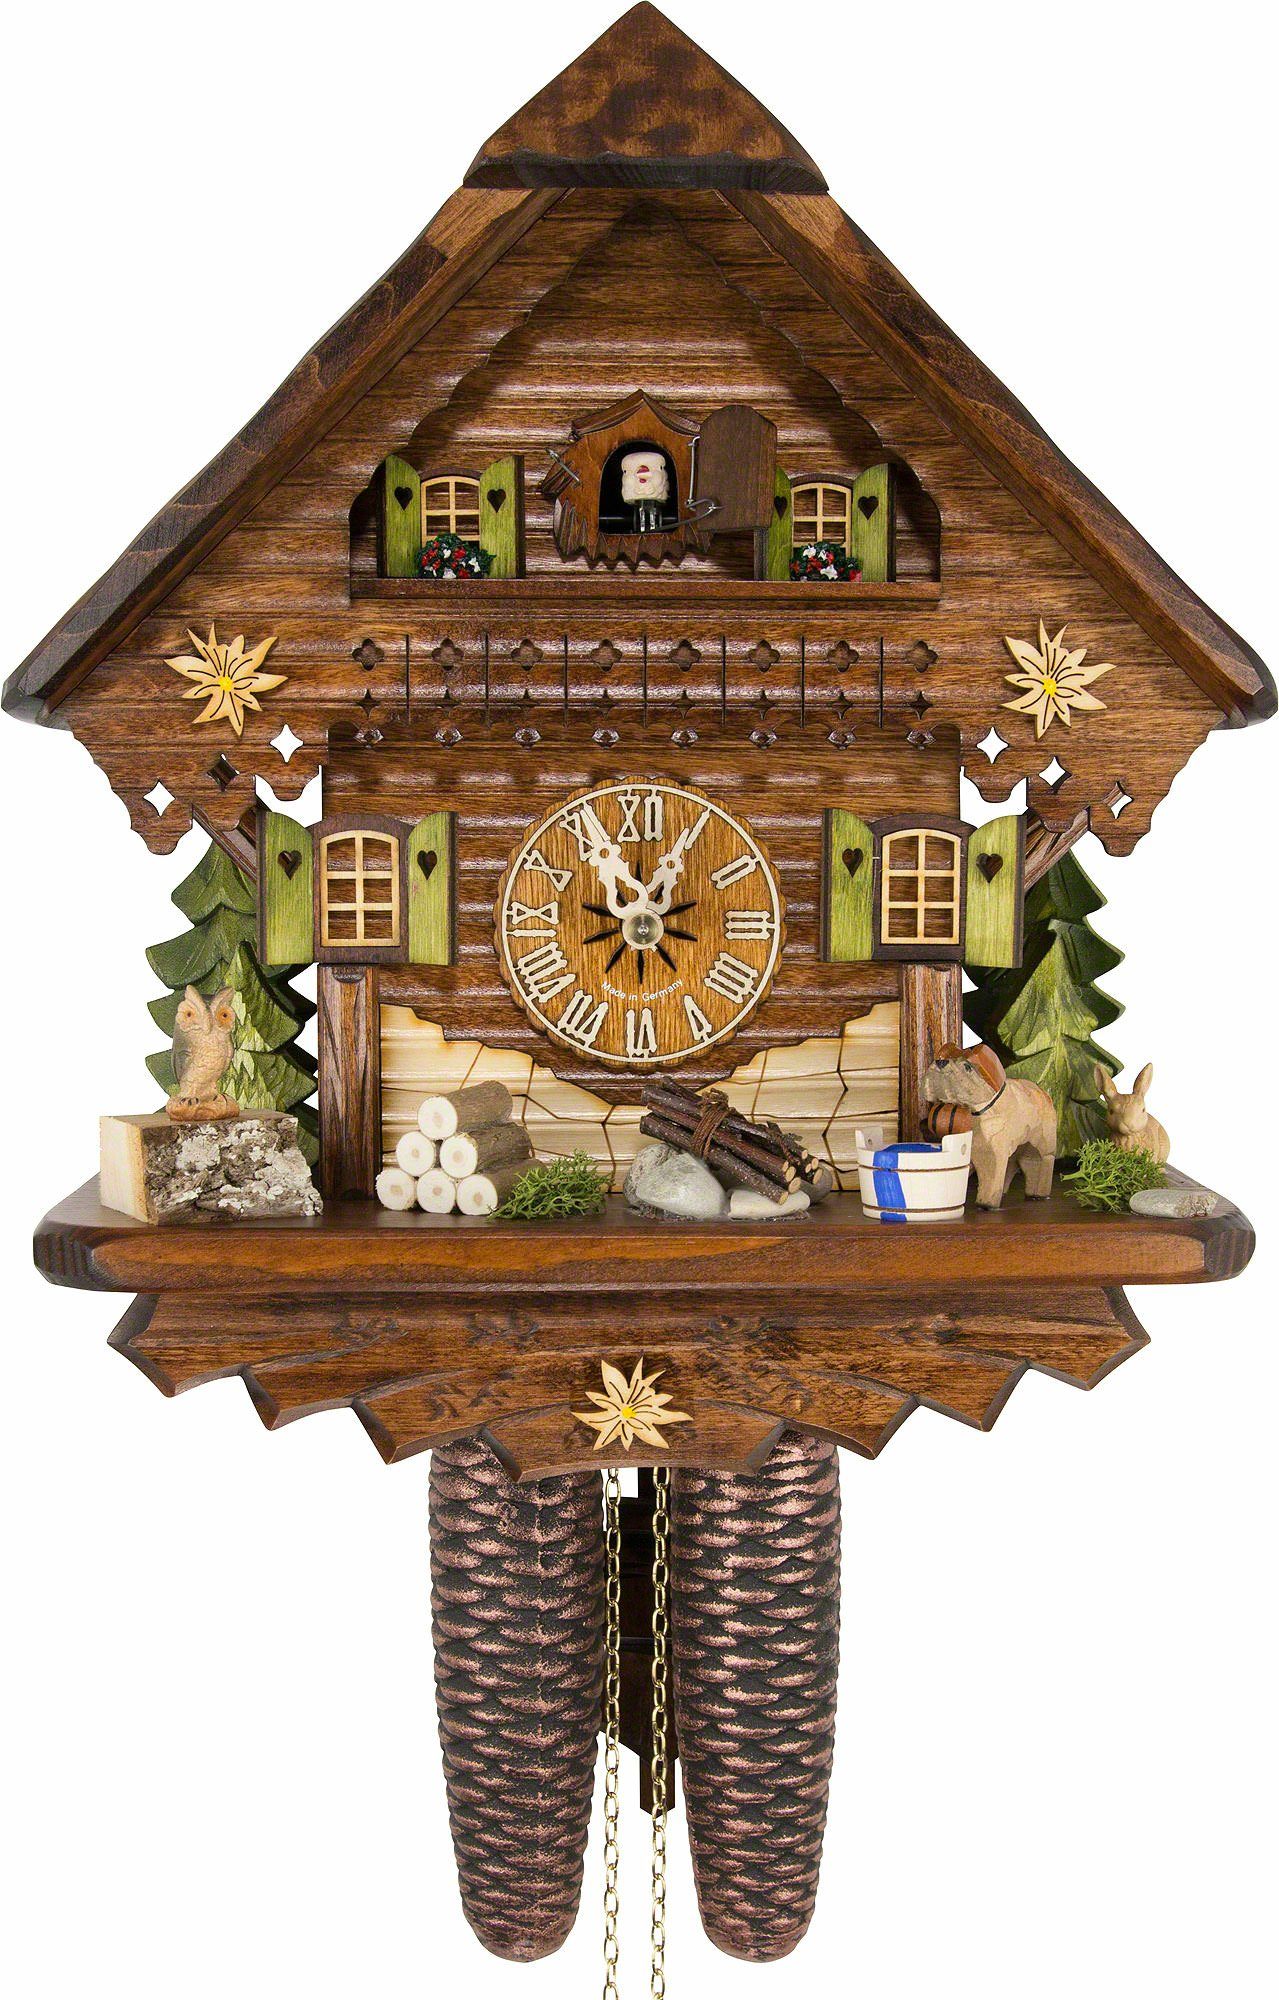 German Cuckoo Clock - Summer Meadow Chalet - BY CUCKOO-PALACE with 8-day-movement - 13 1/3 inches height by Cuckoo-Palace®